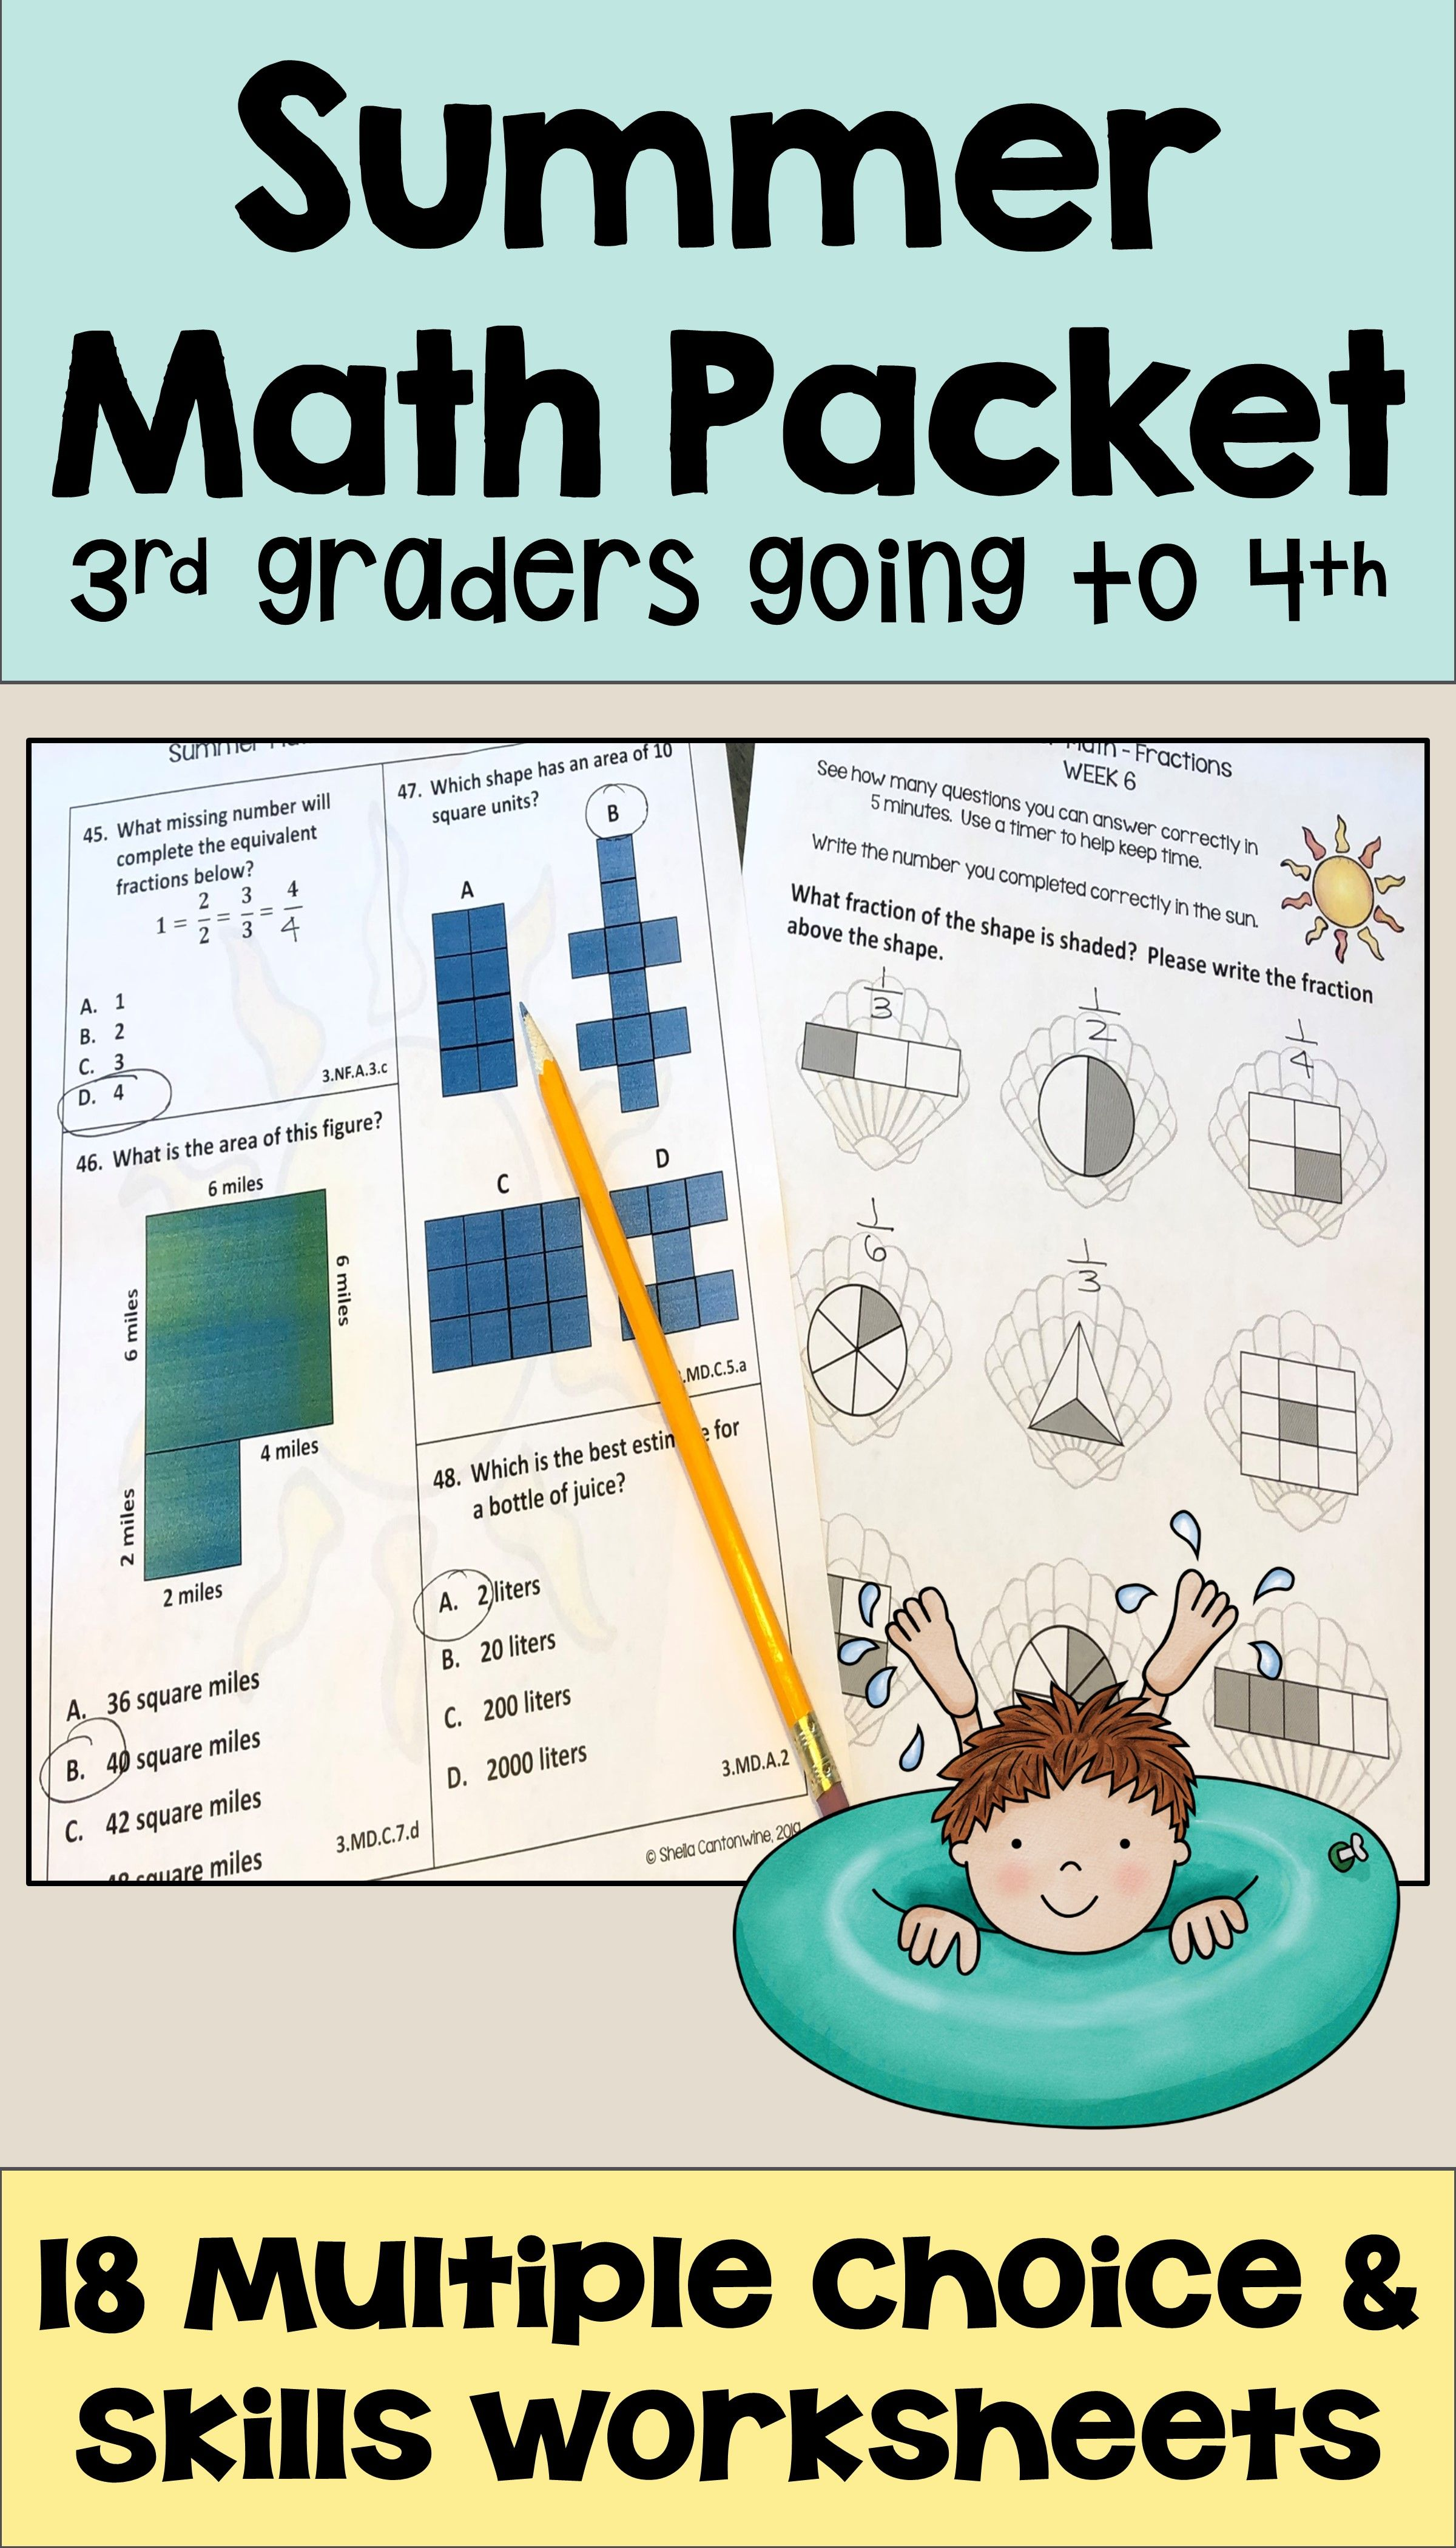 Summer Math Packet For Rising 4th Graders